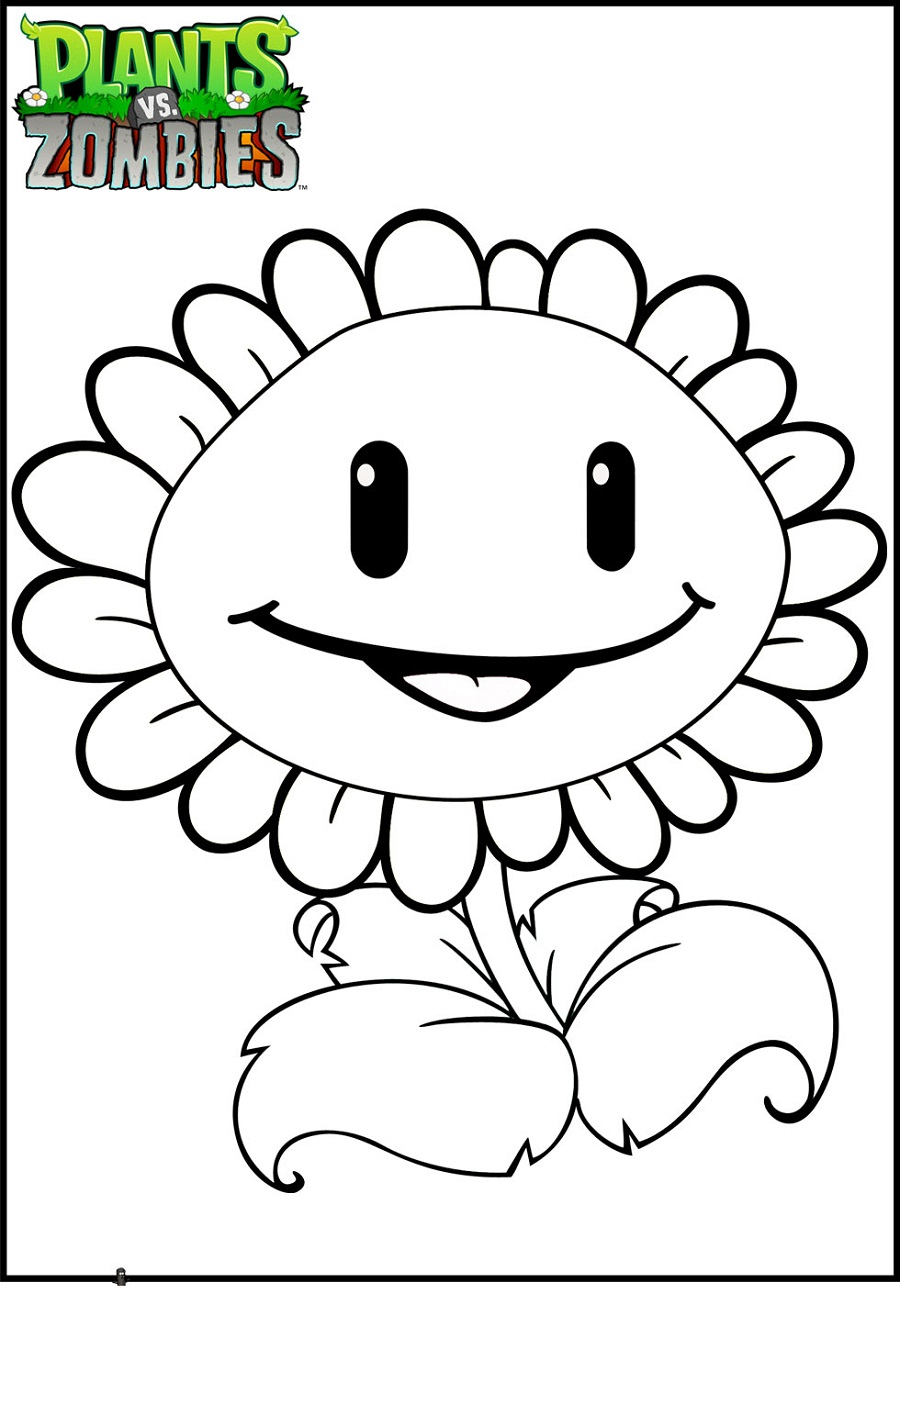 plants vs zombies coloring pages Sun flower